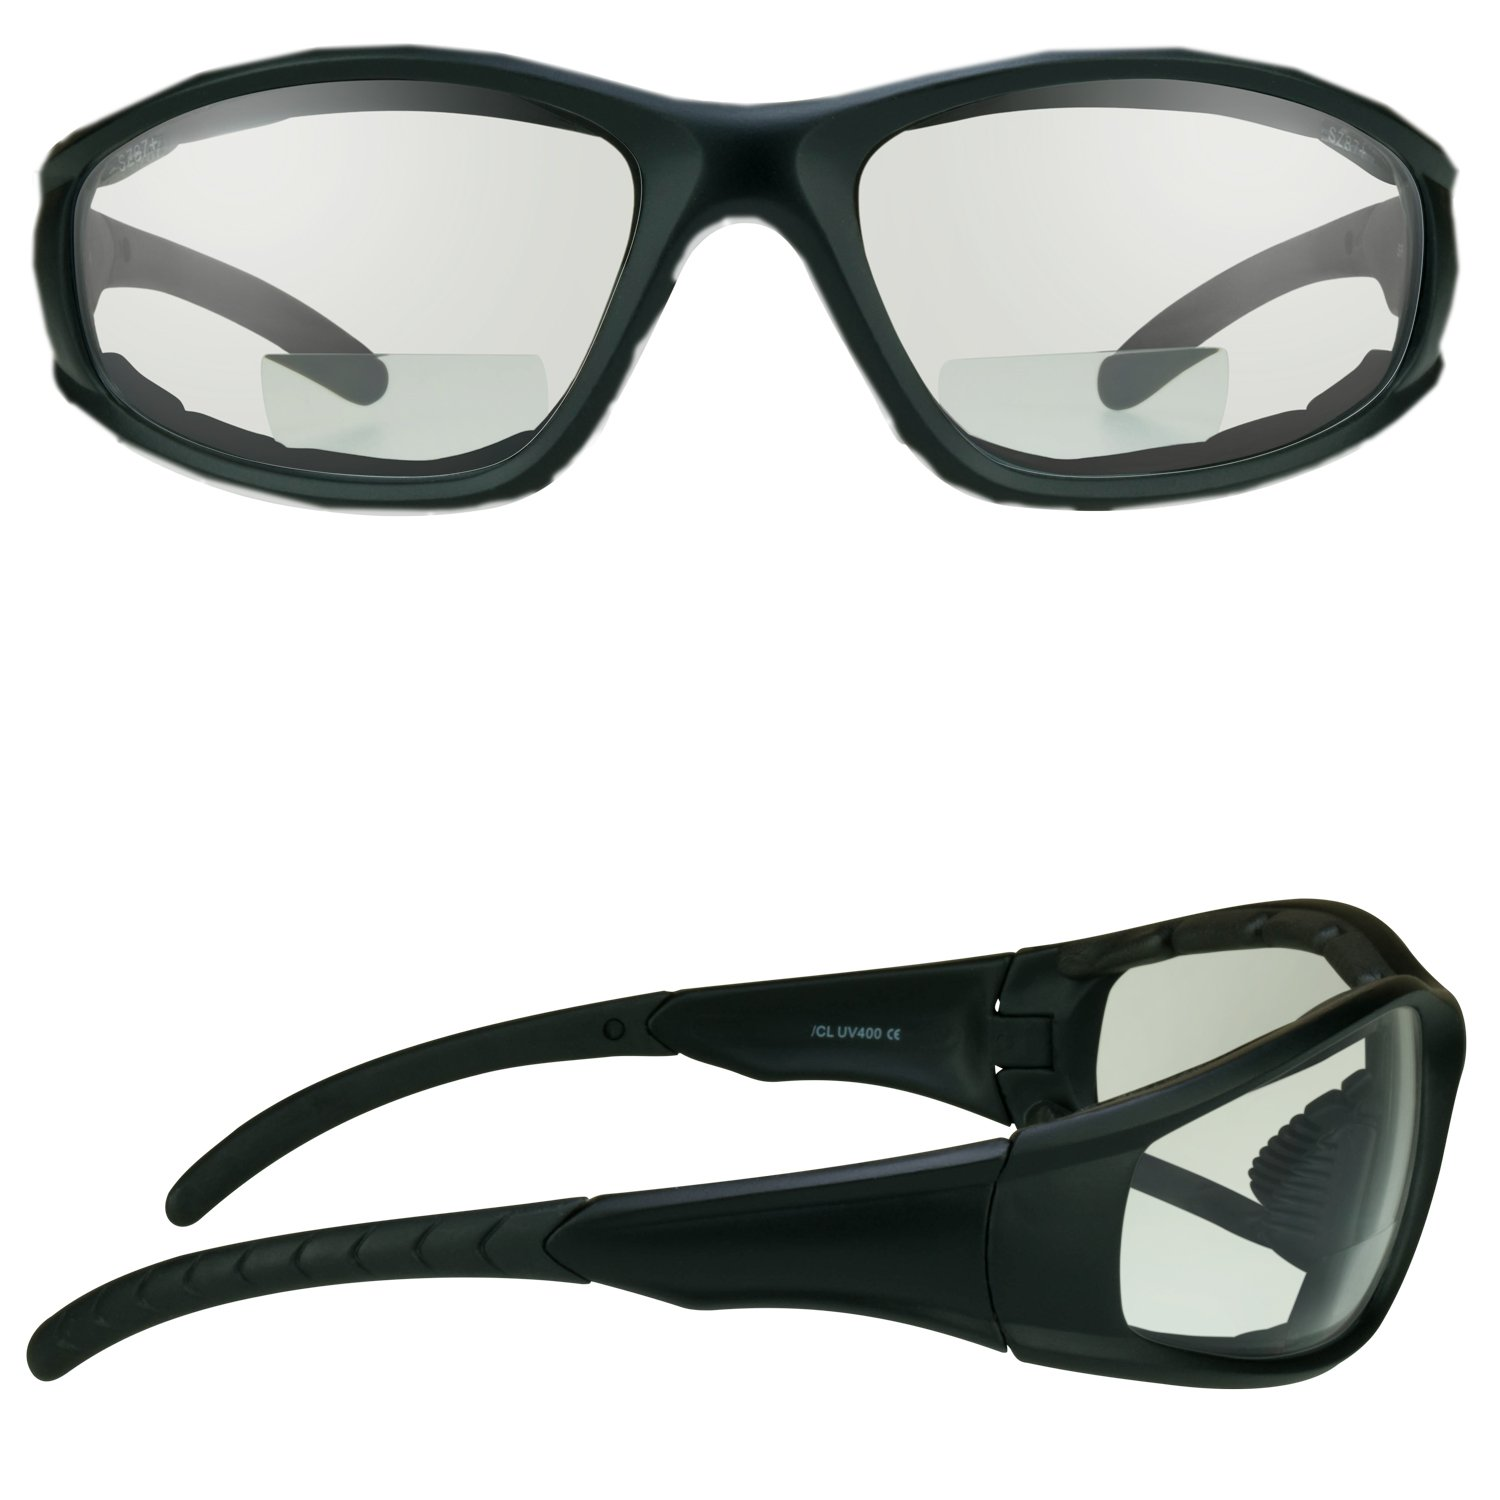 Z87.1 Motorcycle Riding Bifocal Safety Glasses 1.50 Foam Padded